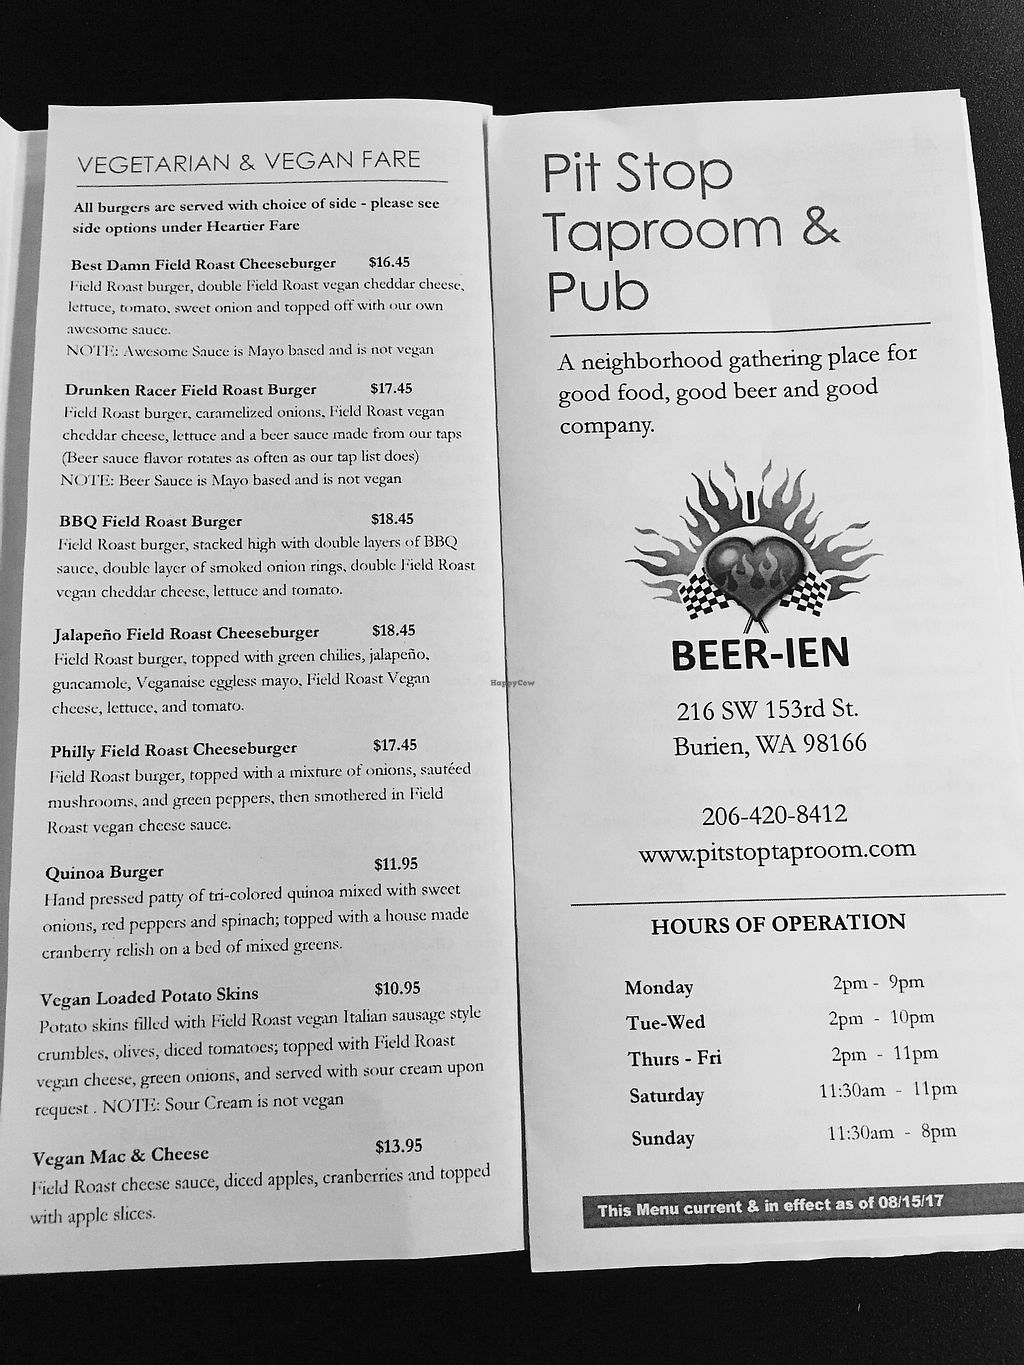 "Photo of Pit Stop Taproom & Pub  by <a href=""/members/profile/DanielaHansen"">DanielaHansen</a> <br/>Menu. In addition they have vegan loaded nachos and quesadillas and and ice cream sundae! <br/> September 5, 2017  - <a href='/contact/abuse/image/95559/301023'>Report</a>"